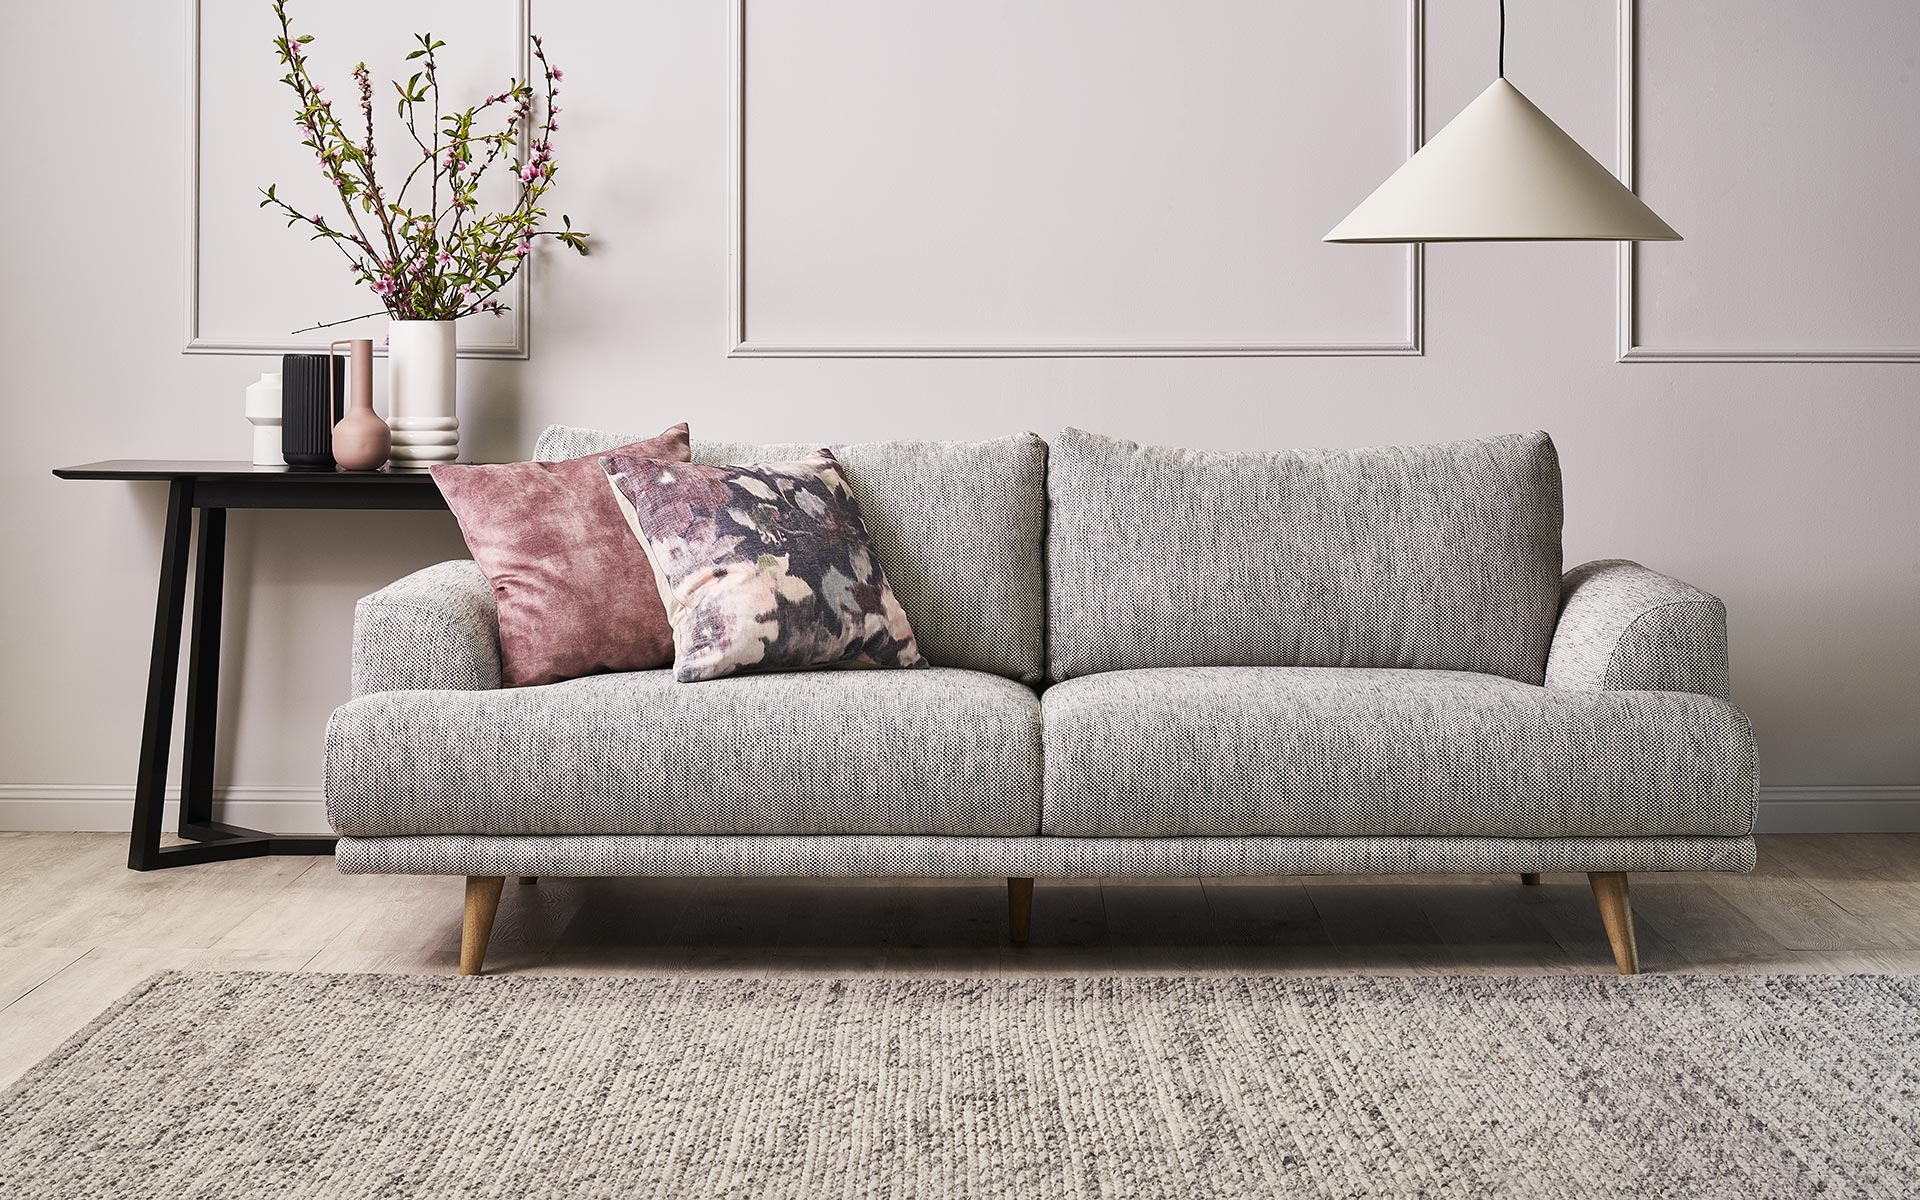 Lounge Couch Charles Sofa - Berkowitz Furniture